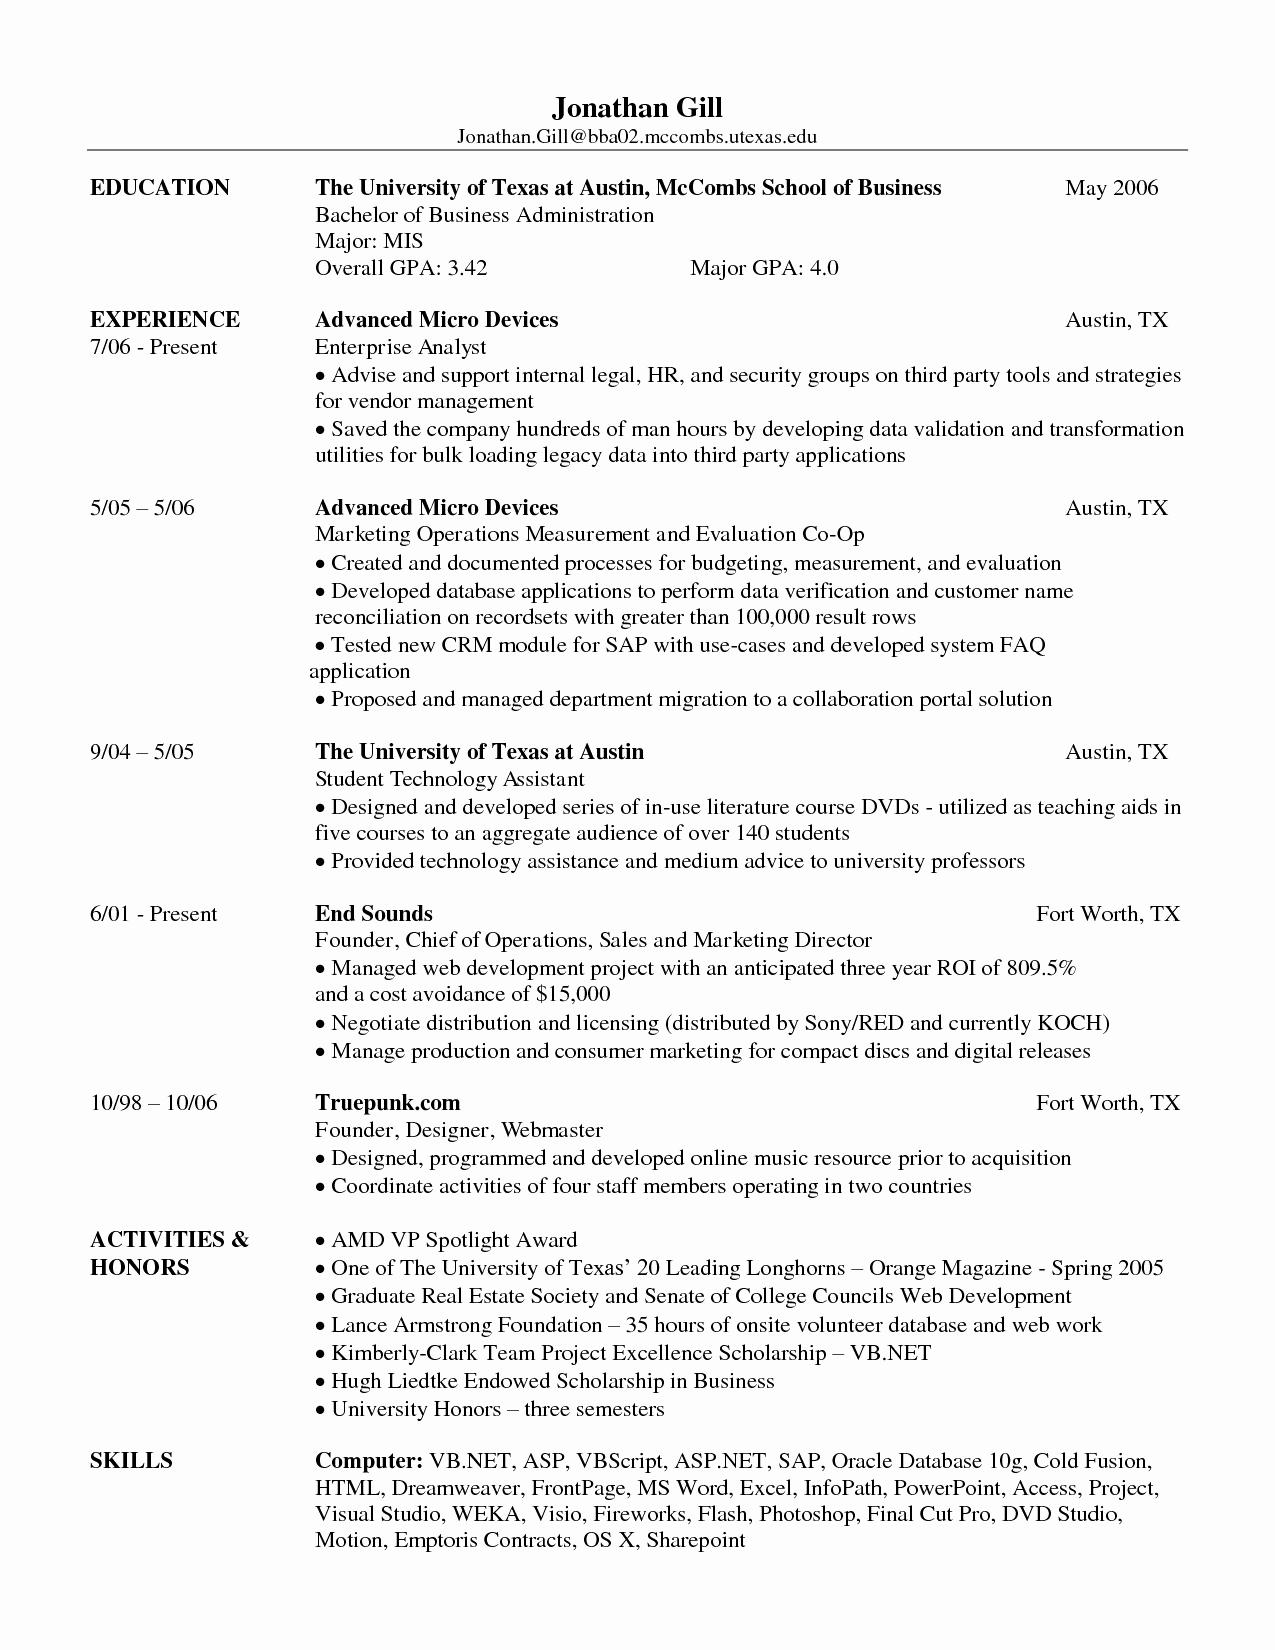 Utexas Mccombs Resume Template - Resume format for Bba Graduates Luxury Law Student Resume Template